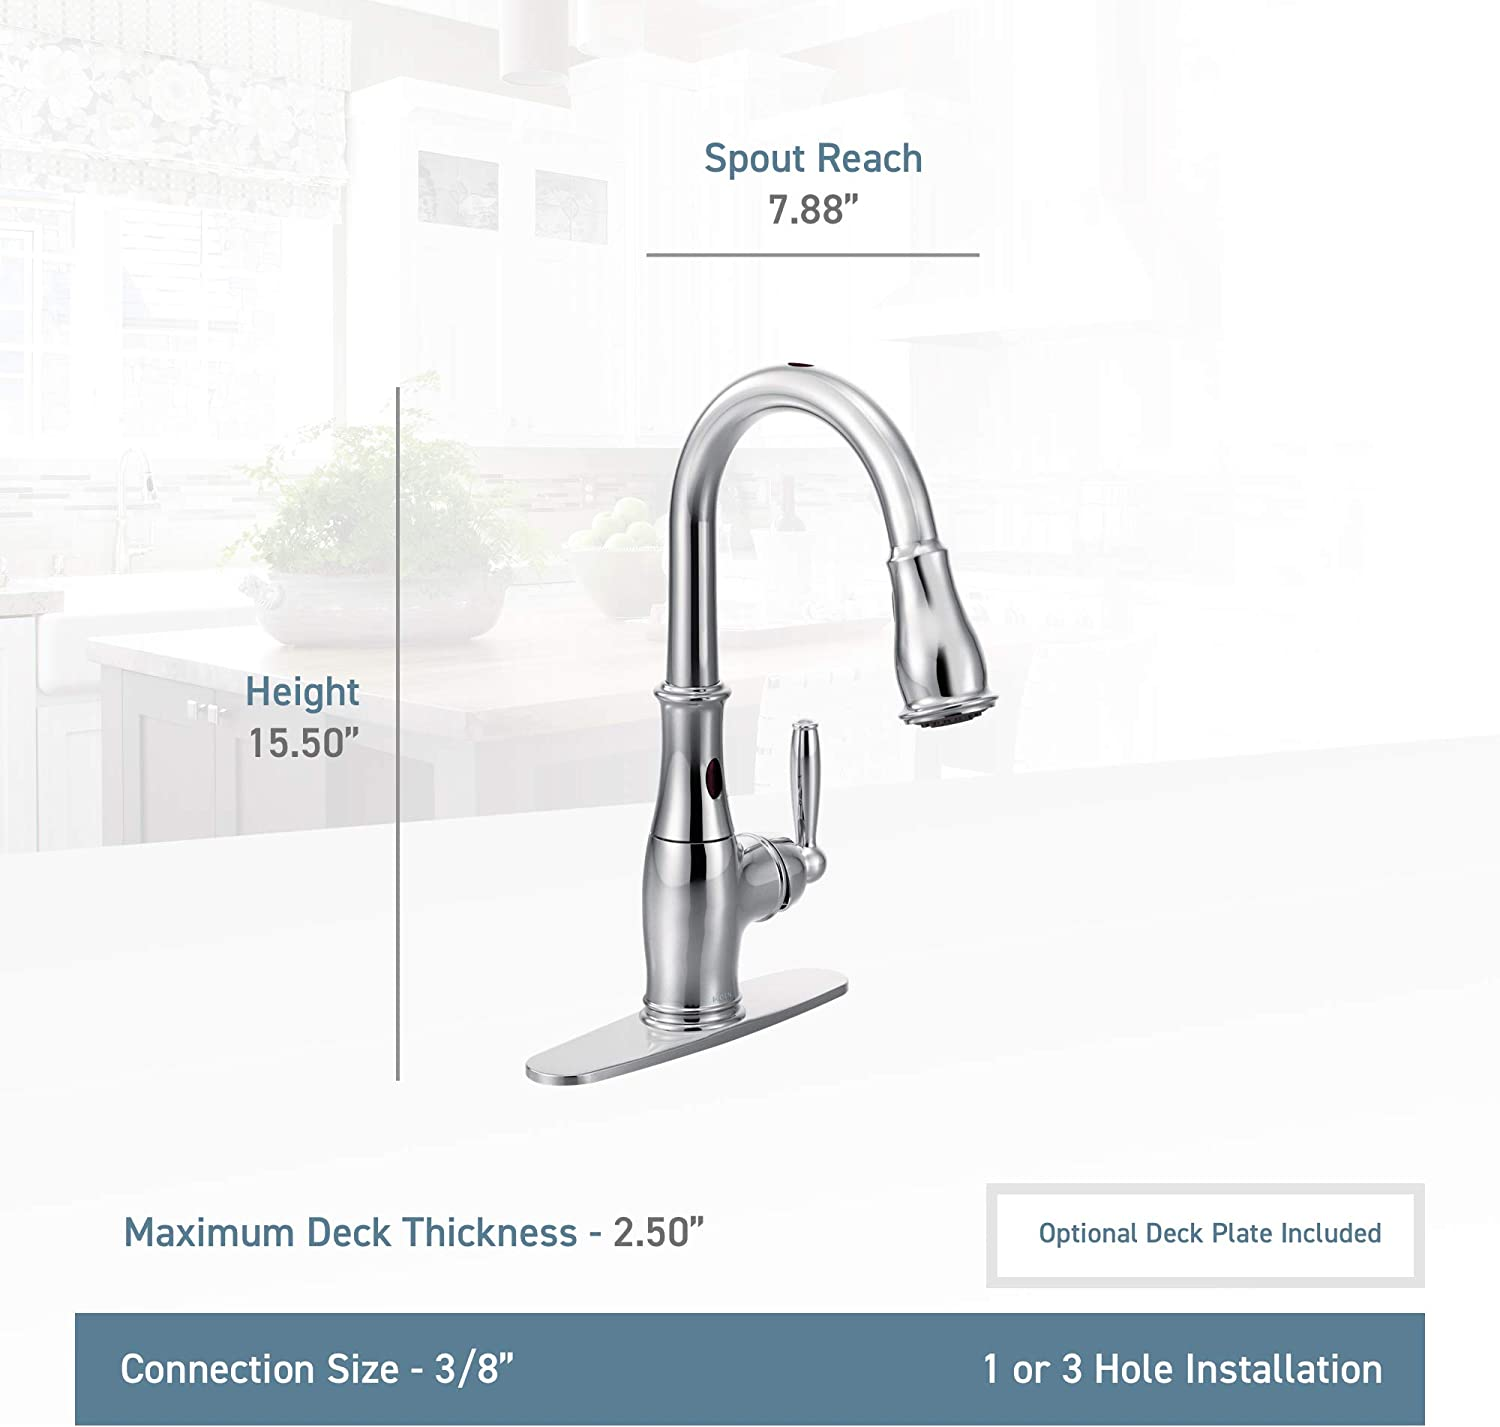 Moen 7185eorb Brantford Motionsense Two Sensor Touchless One Handle High Arc Pulldown Kitchen Faucet Featuring Reflex Oil Rubbed Bronze Touch On Kitchen Sink Faucets Amazon Com